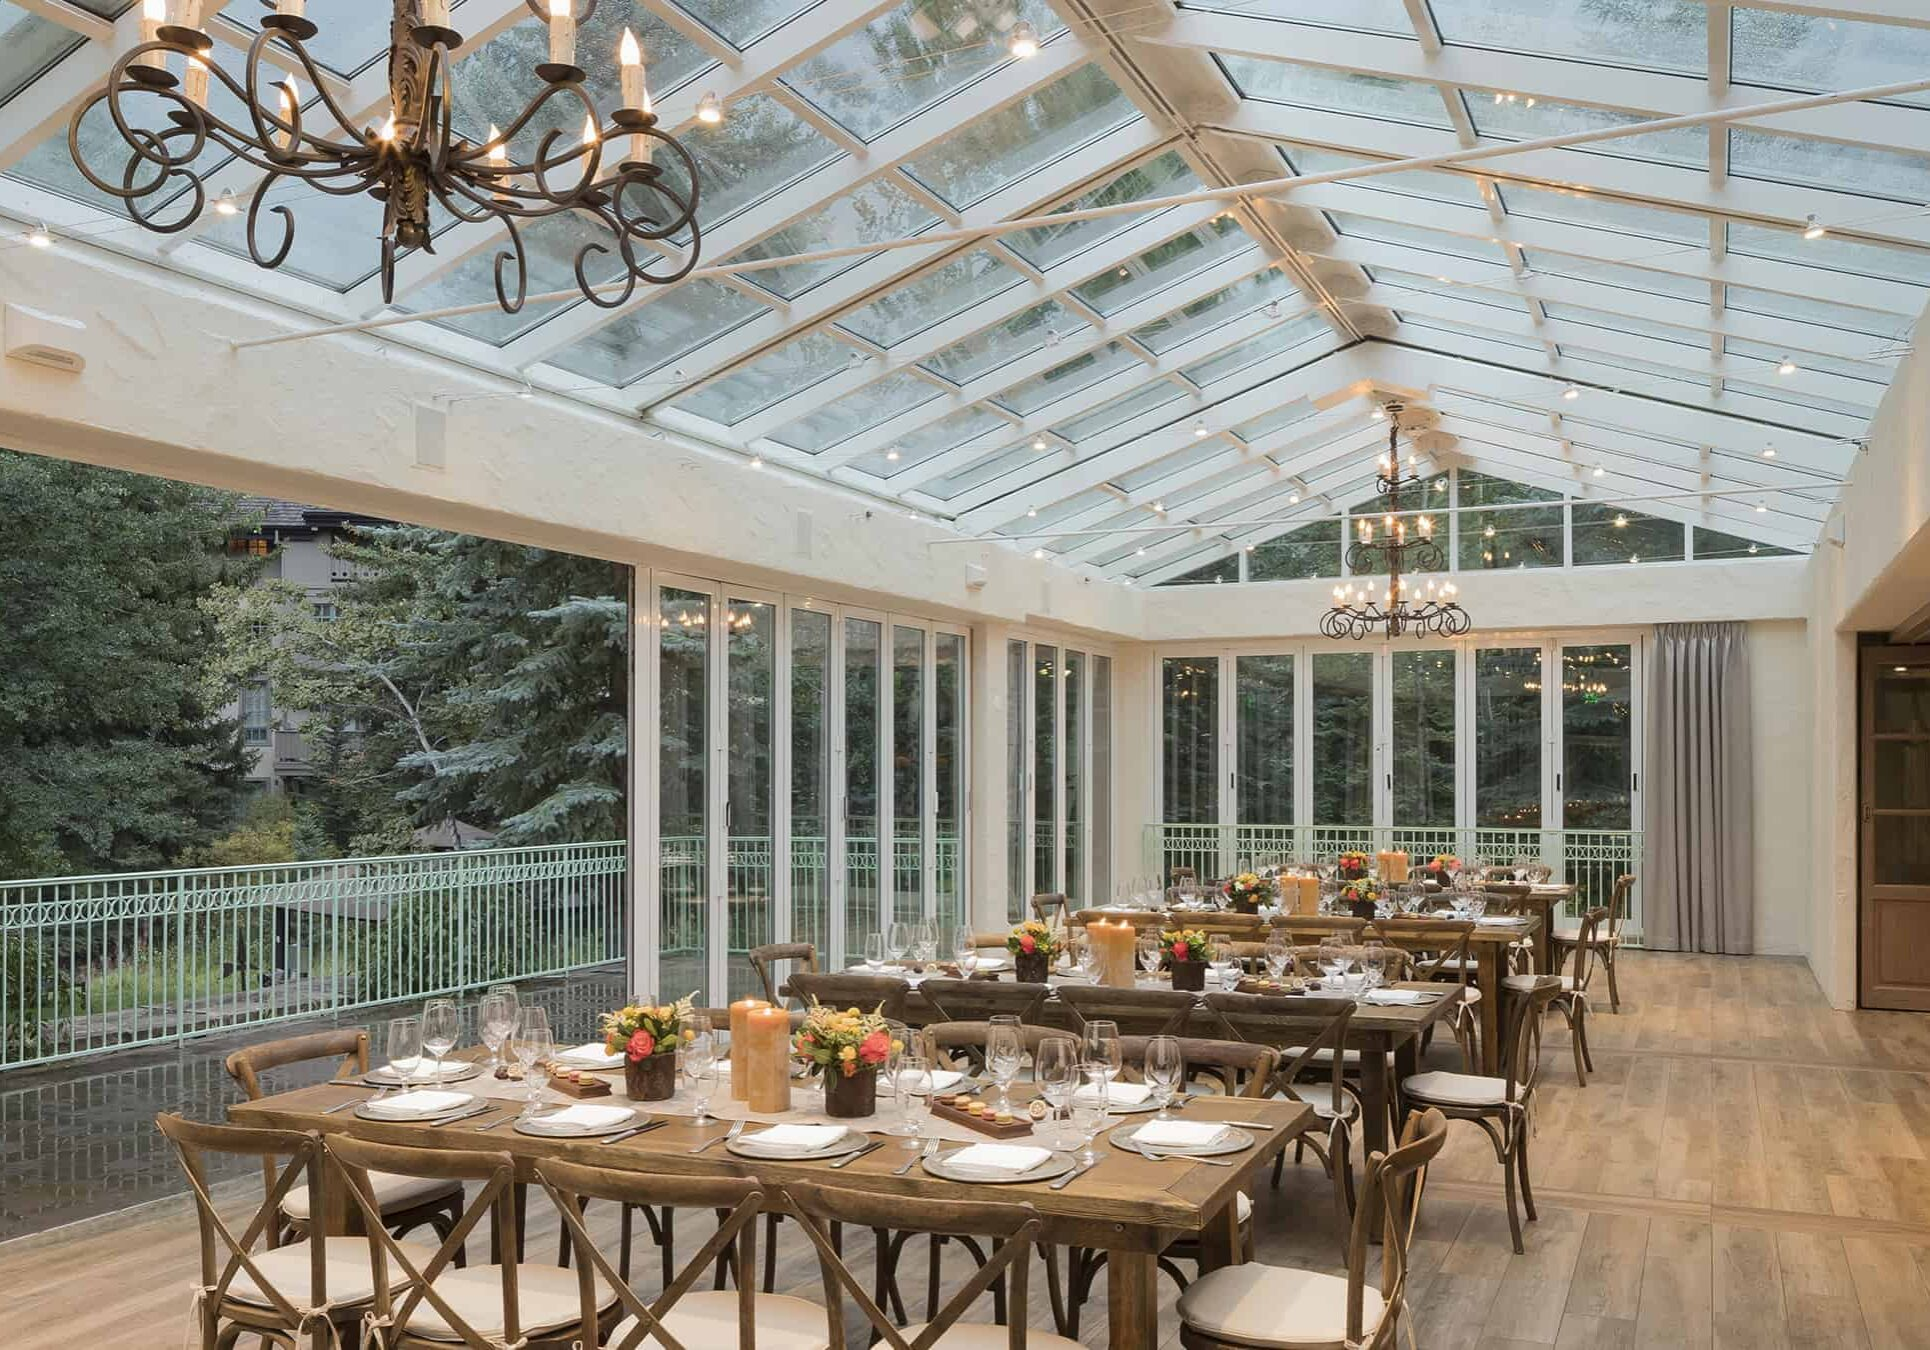 Outdoor terrace with glass roof, and tables wth placesettings